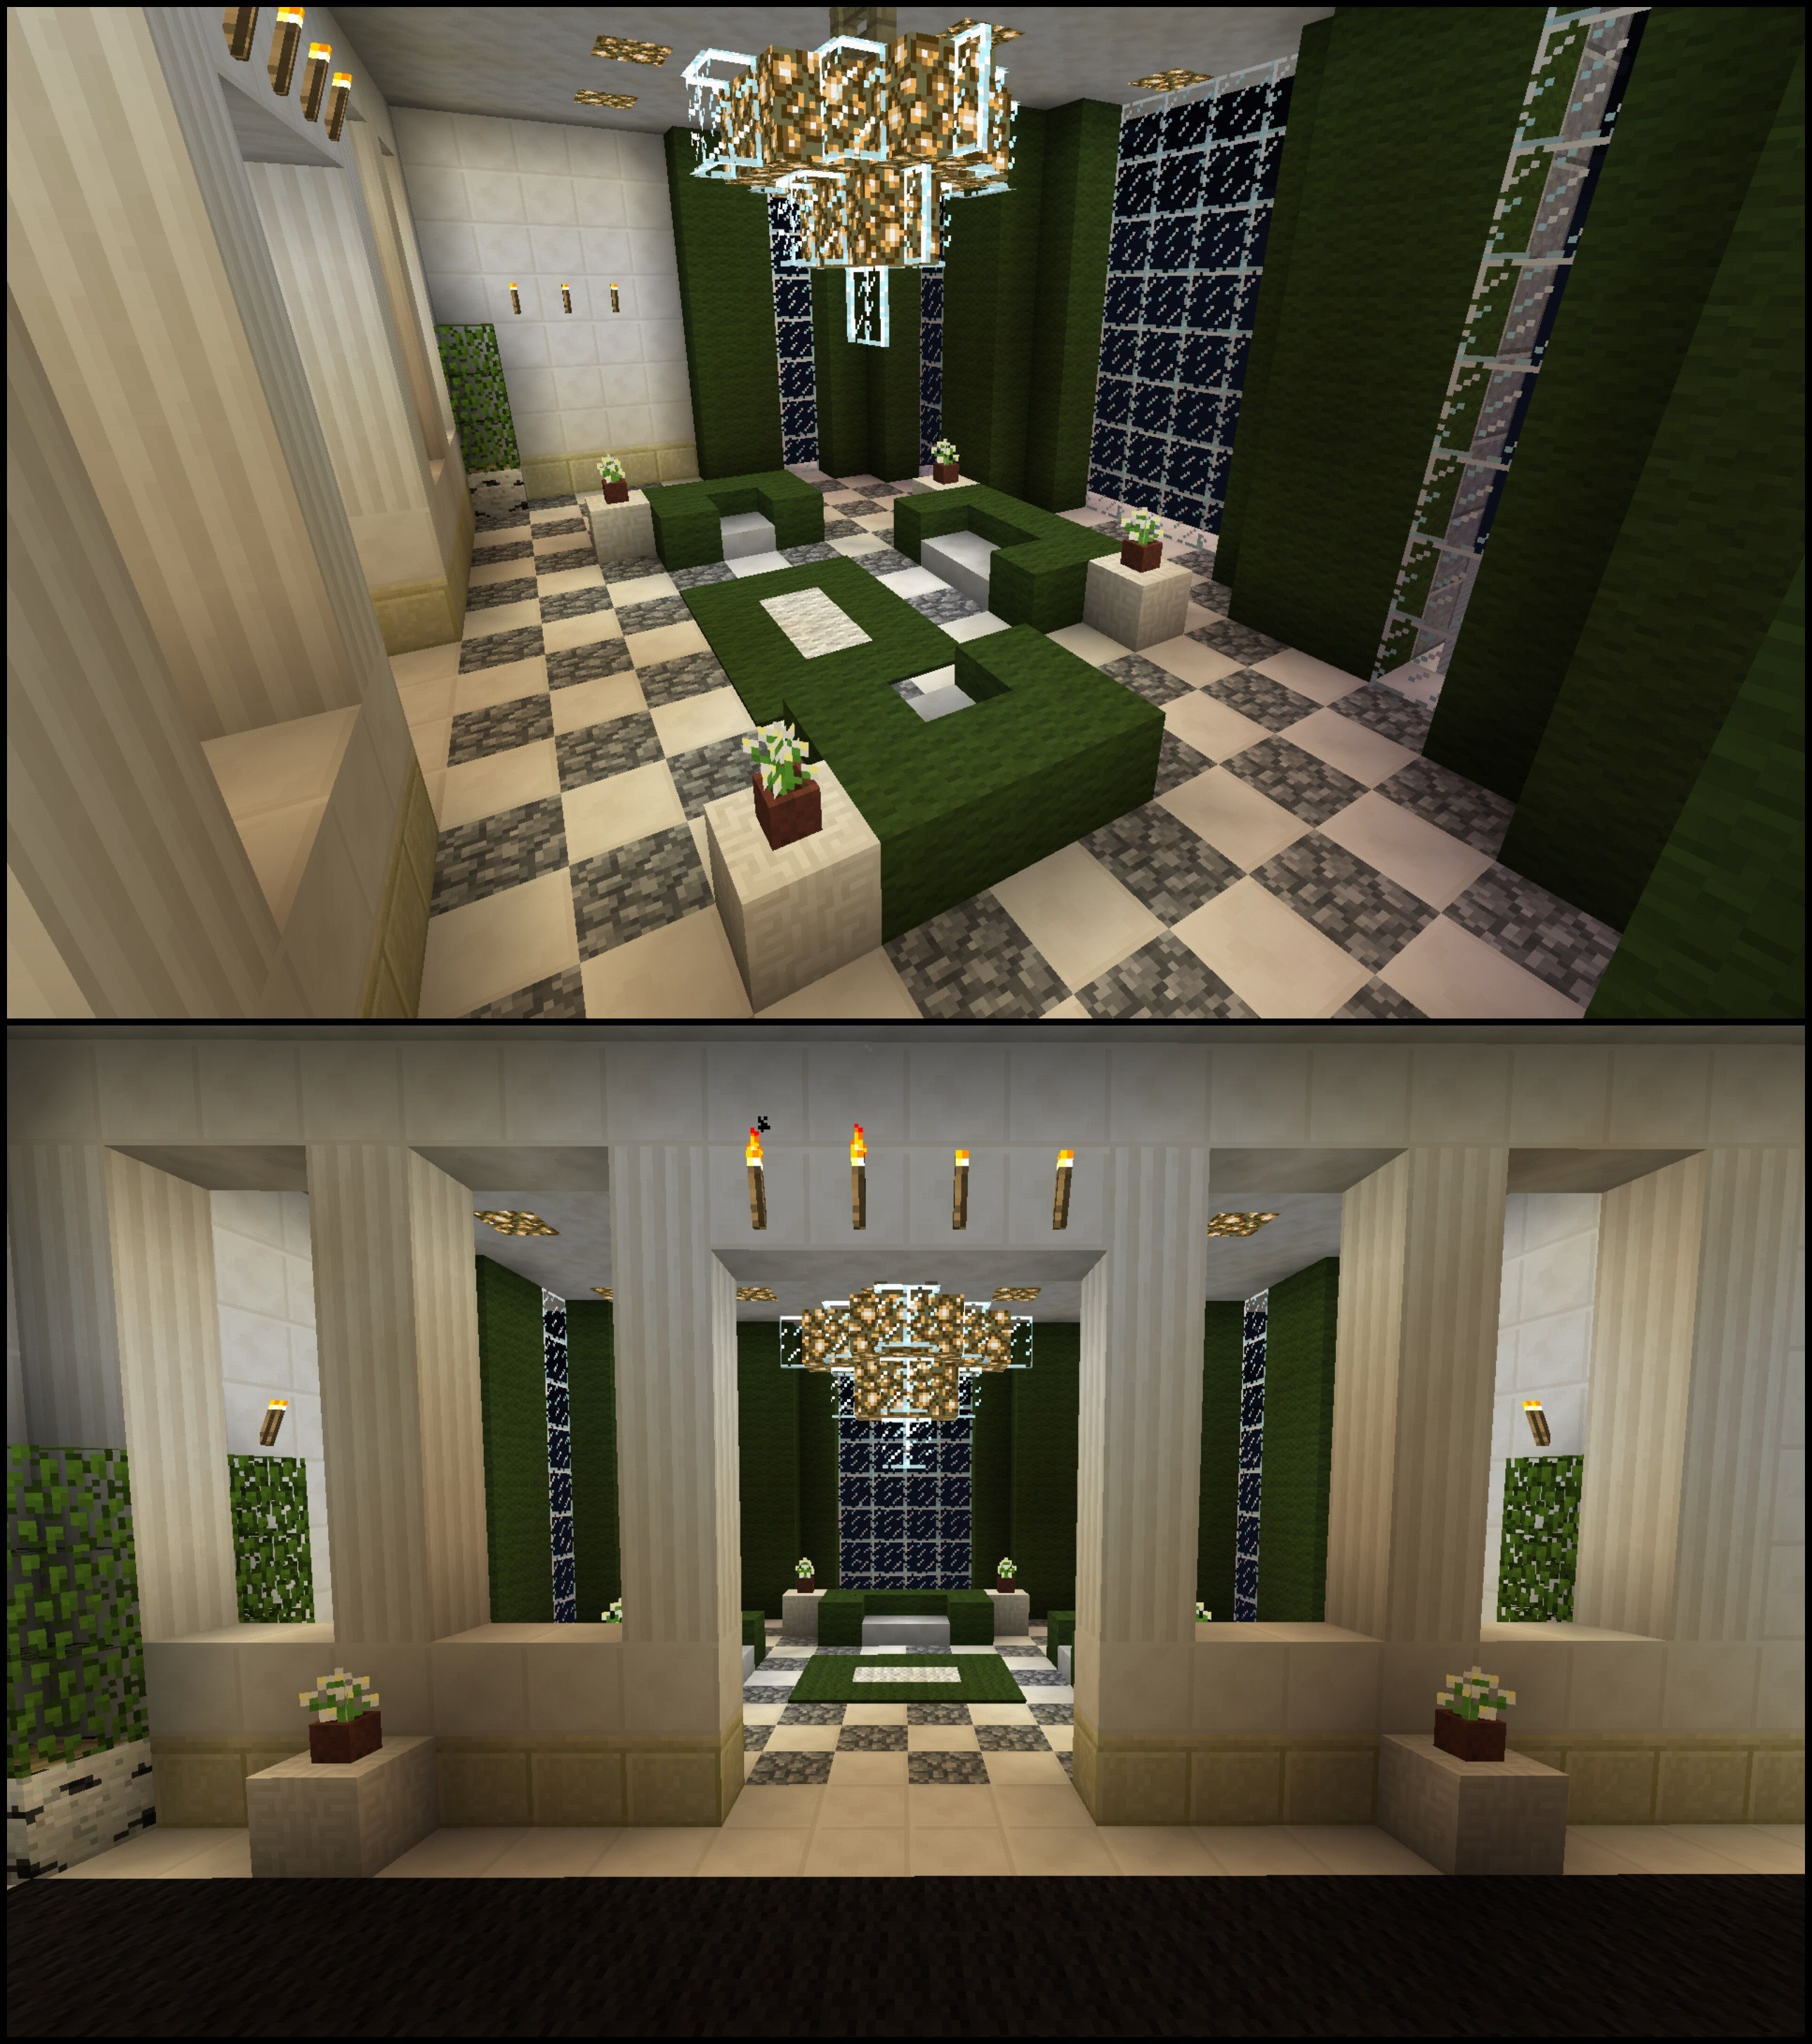 Living Room Minecraft minecraft green living room furniture curtains chandelier